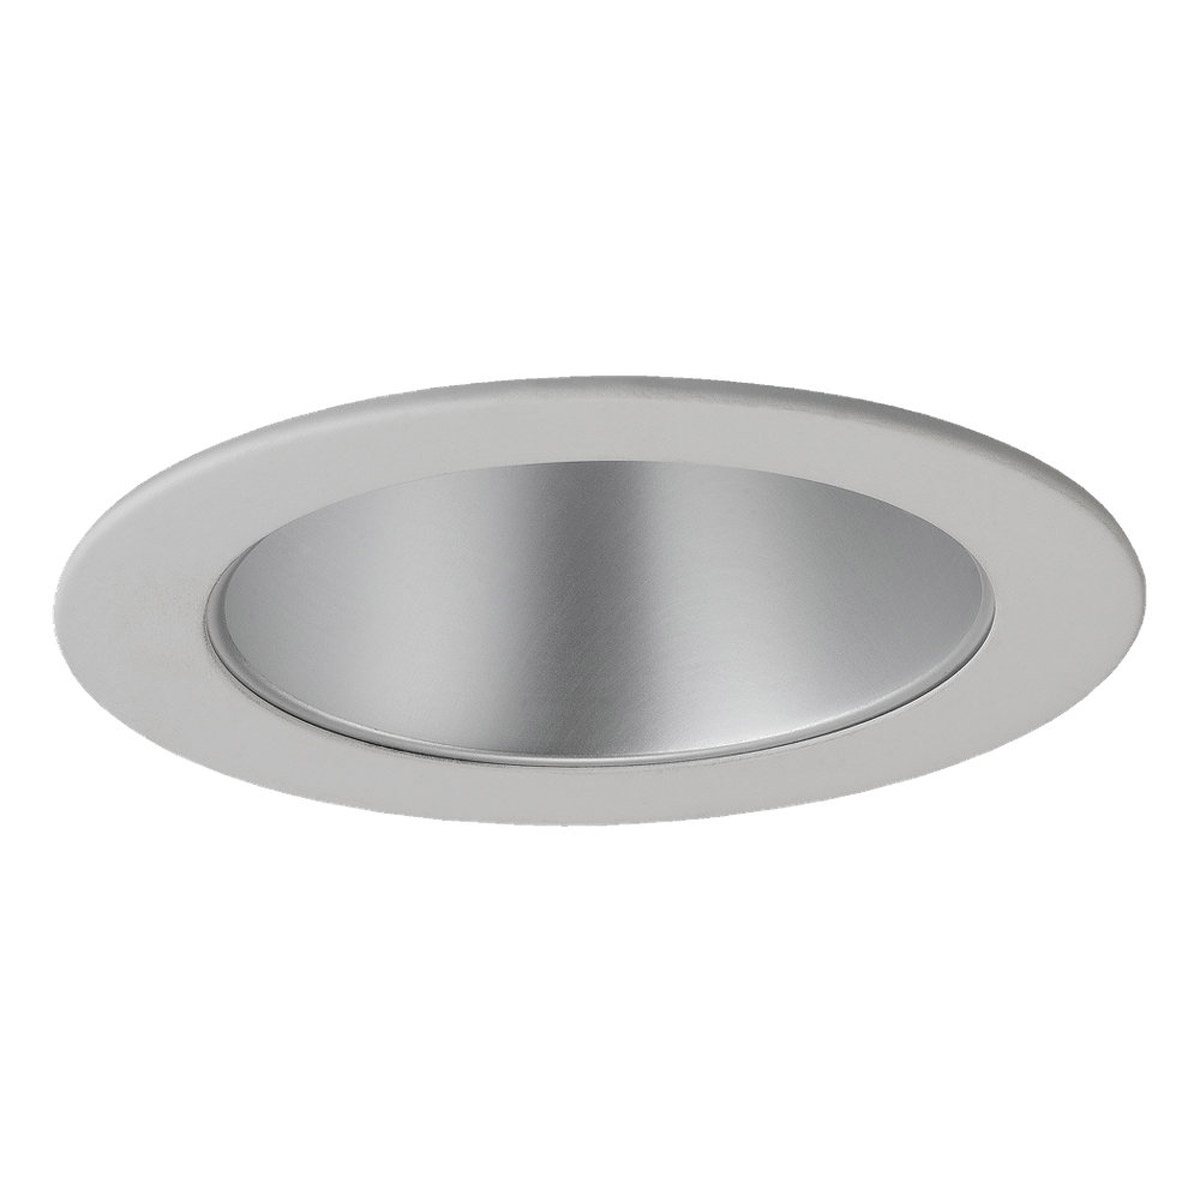 Sea Gull Lighting Signature Recessed Trim Only in Satin Nickel - White 1162AT-861